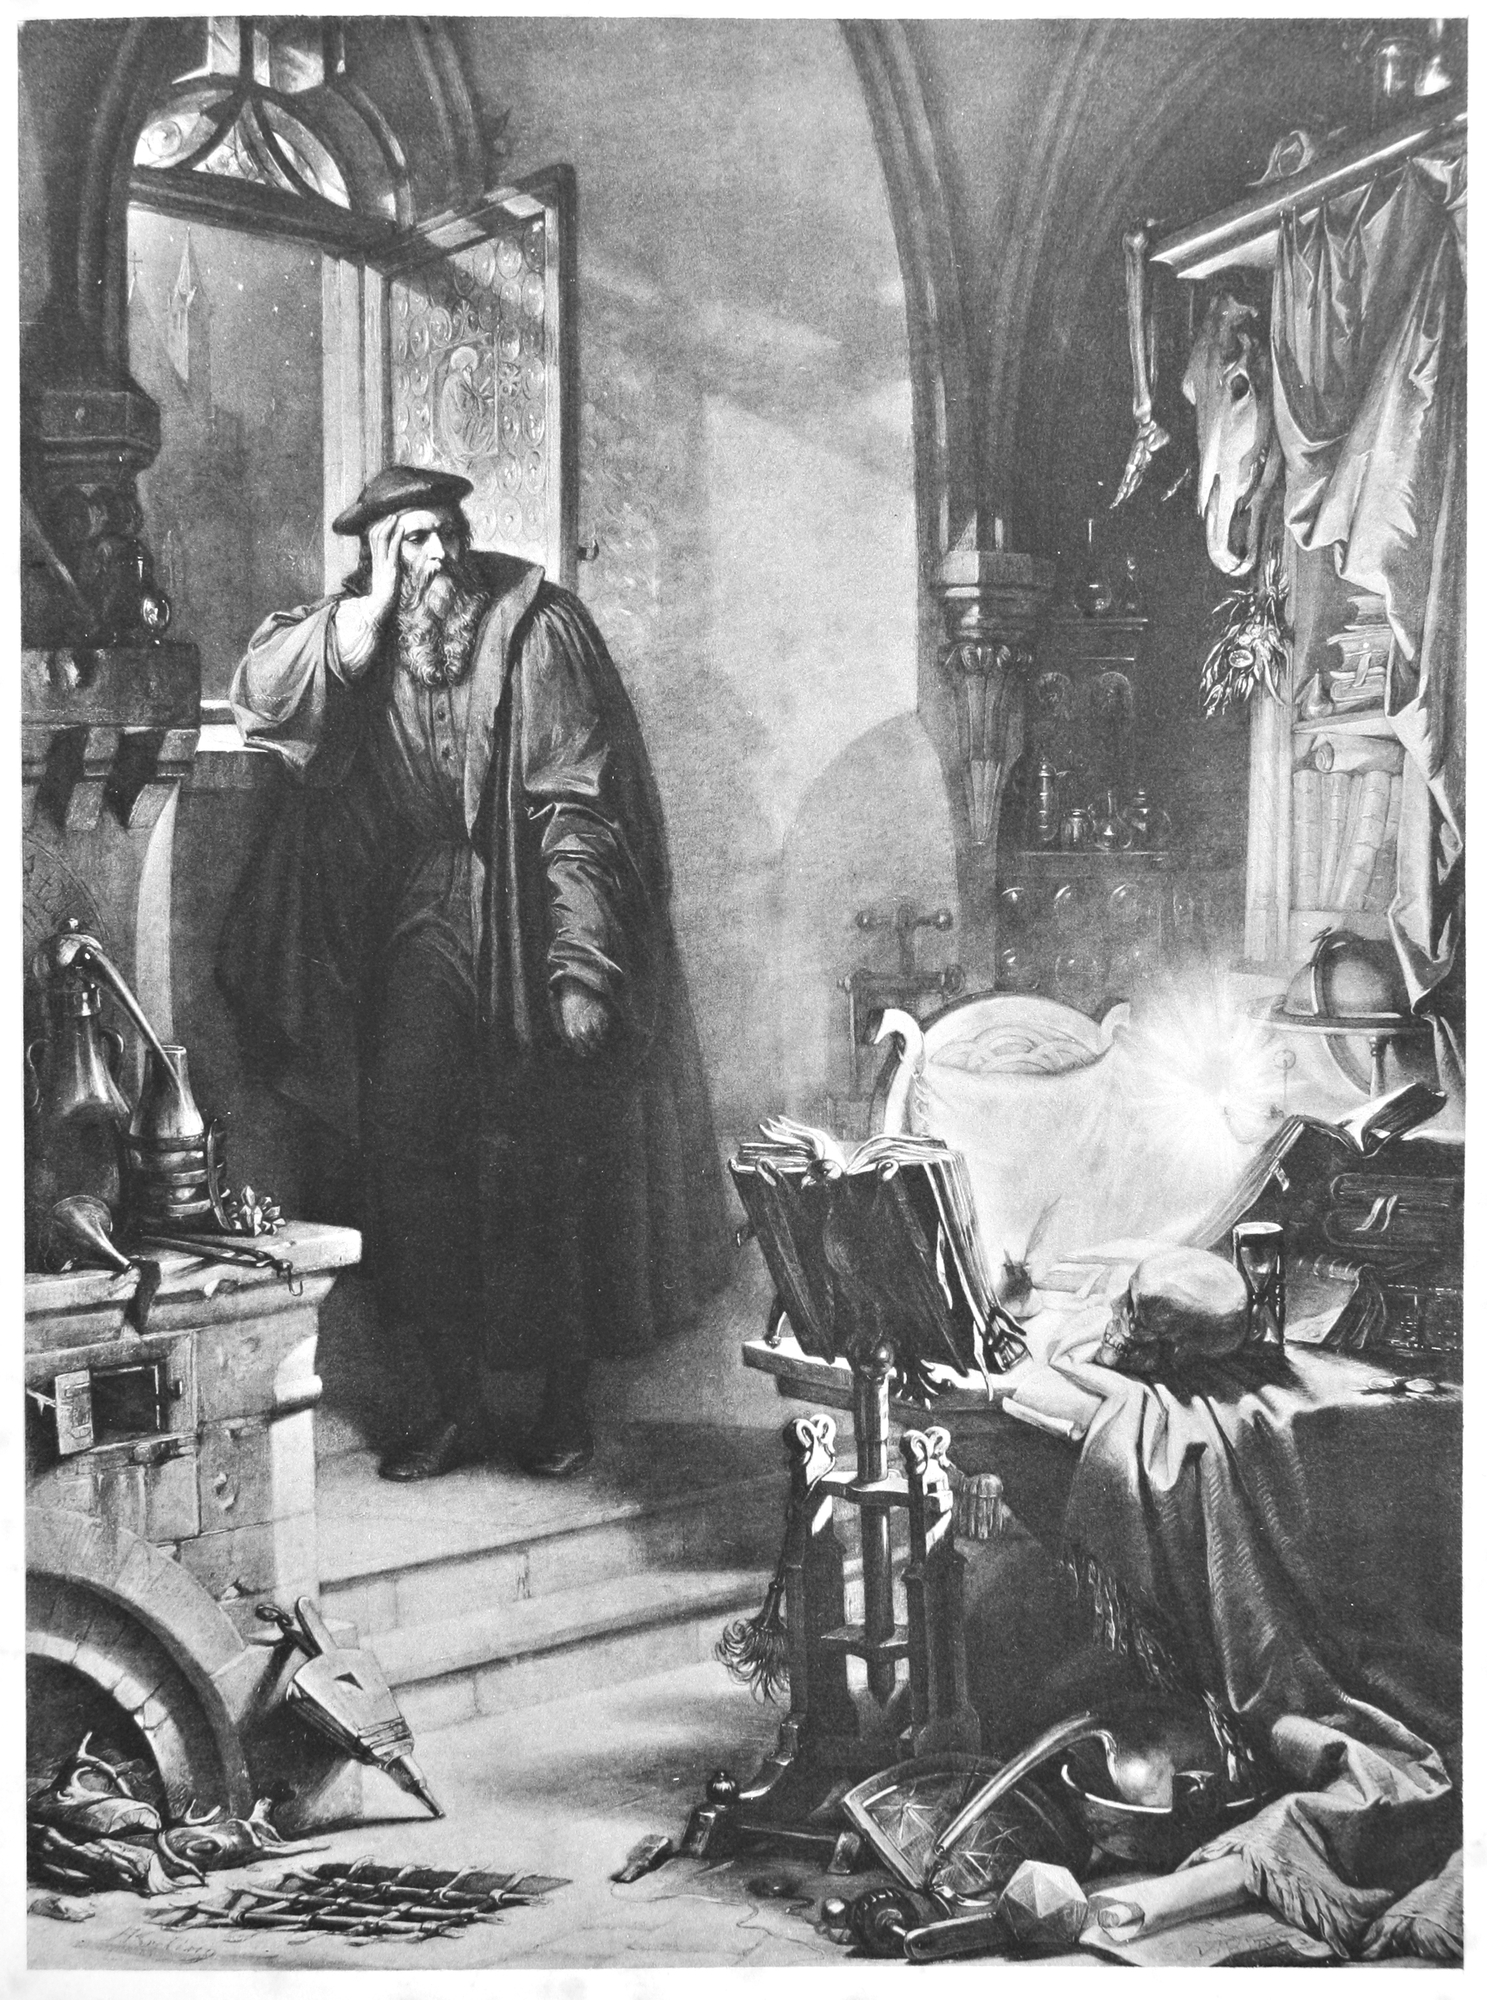 The Book Of Faust By Goethe